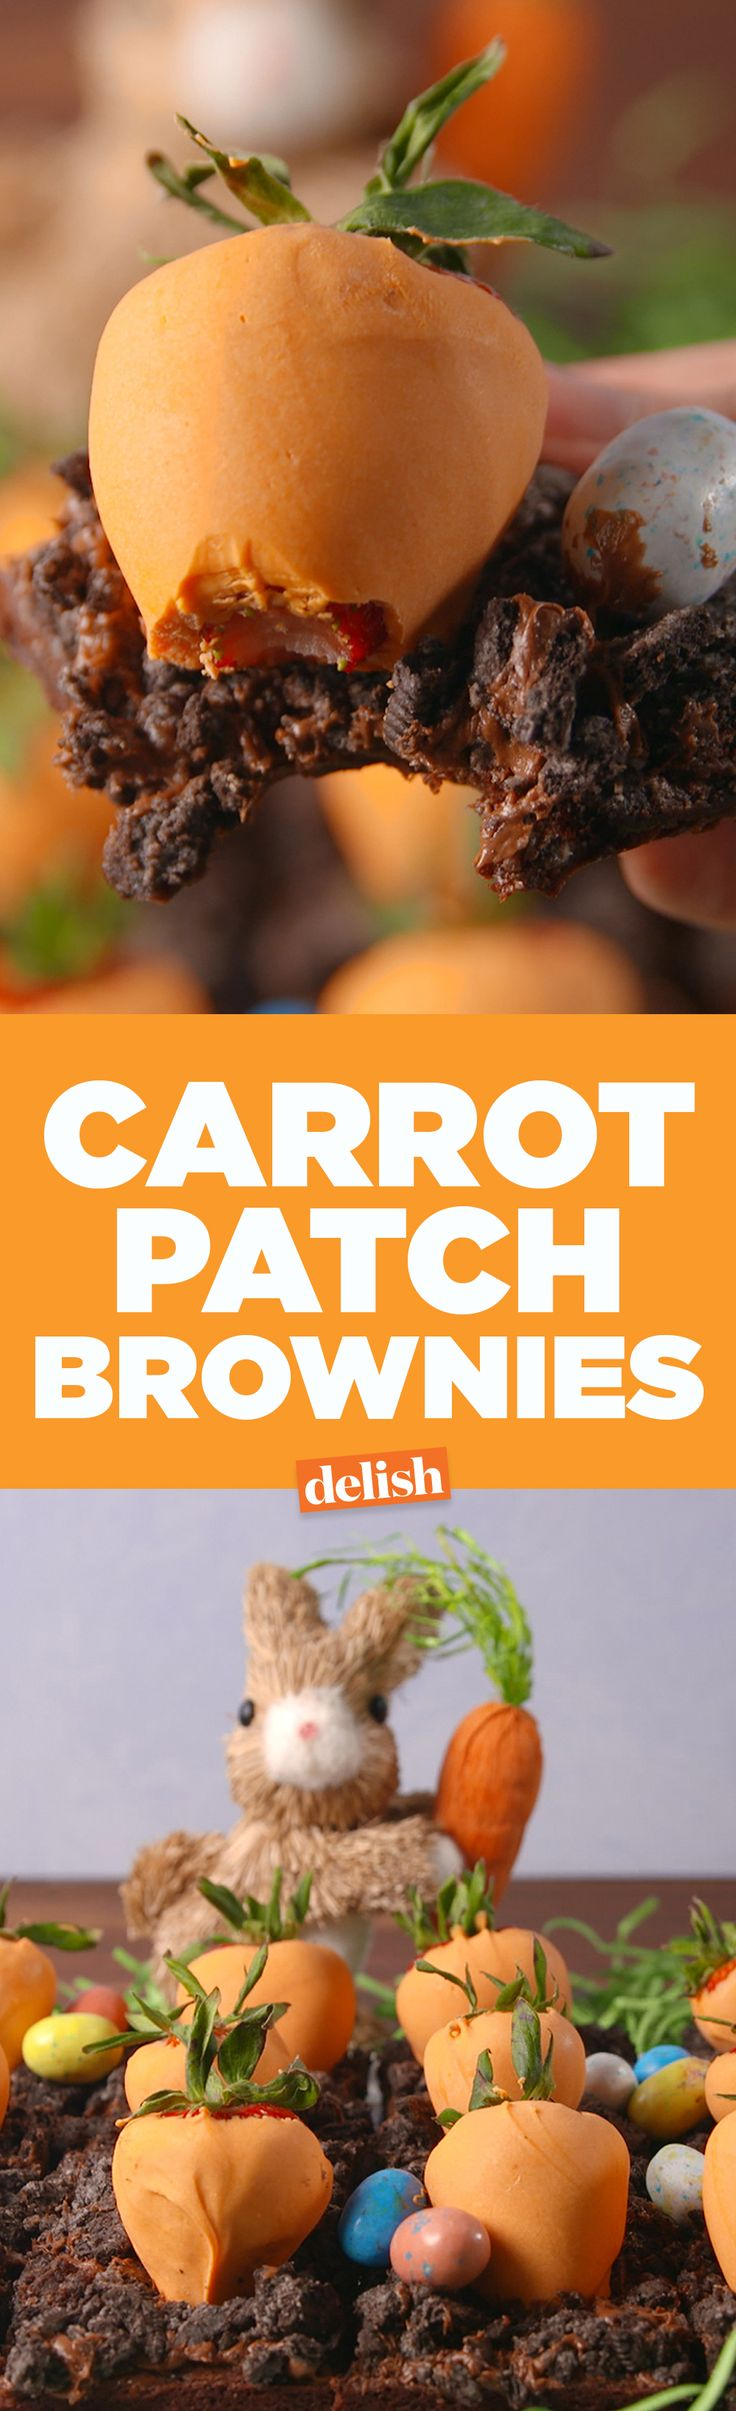 These Carrot Patch Brownies are the no-fail Easter dessert you'll make every single year. Get the recipe on Delish.com.